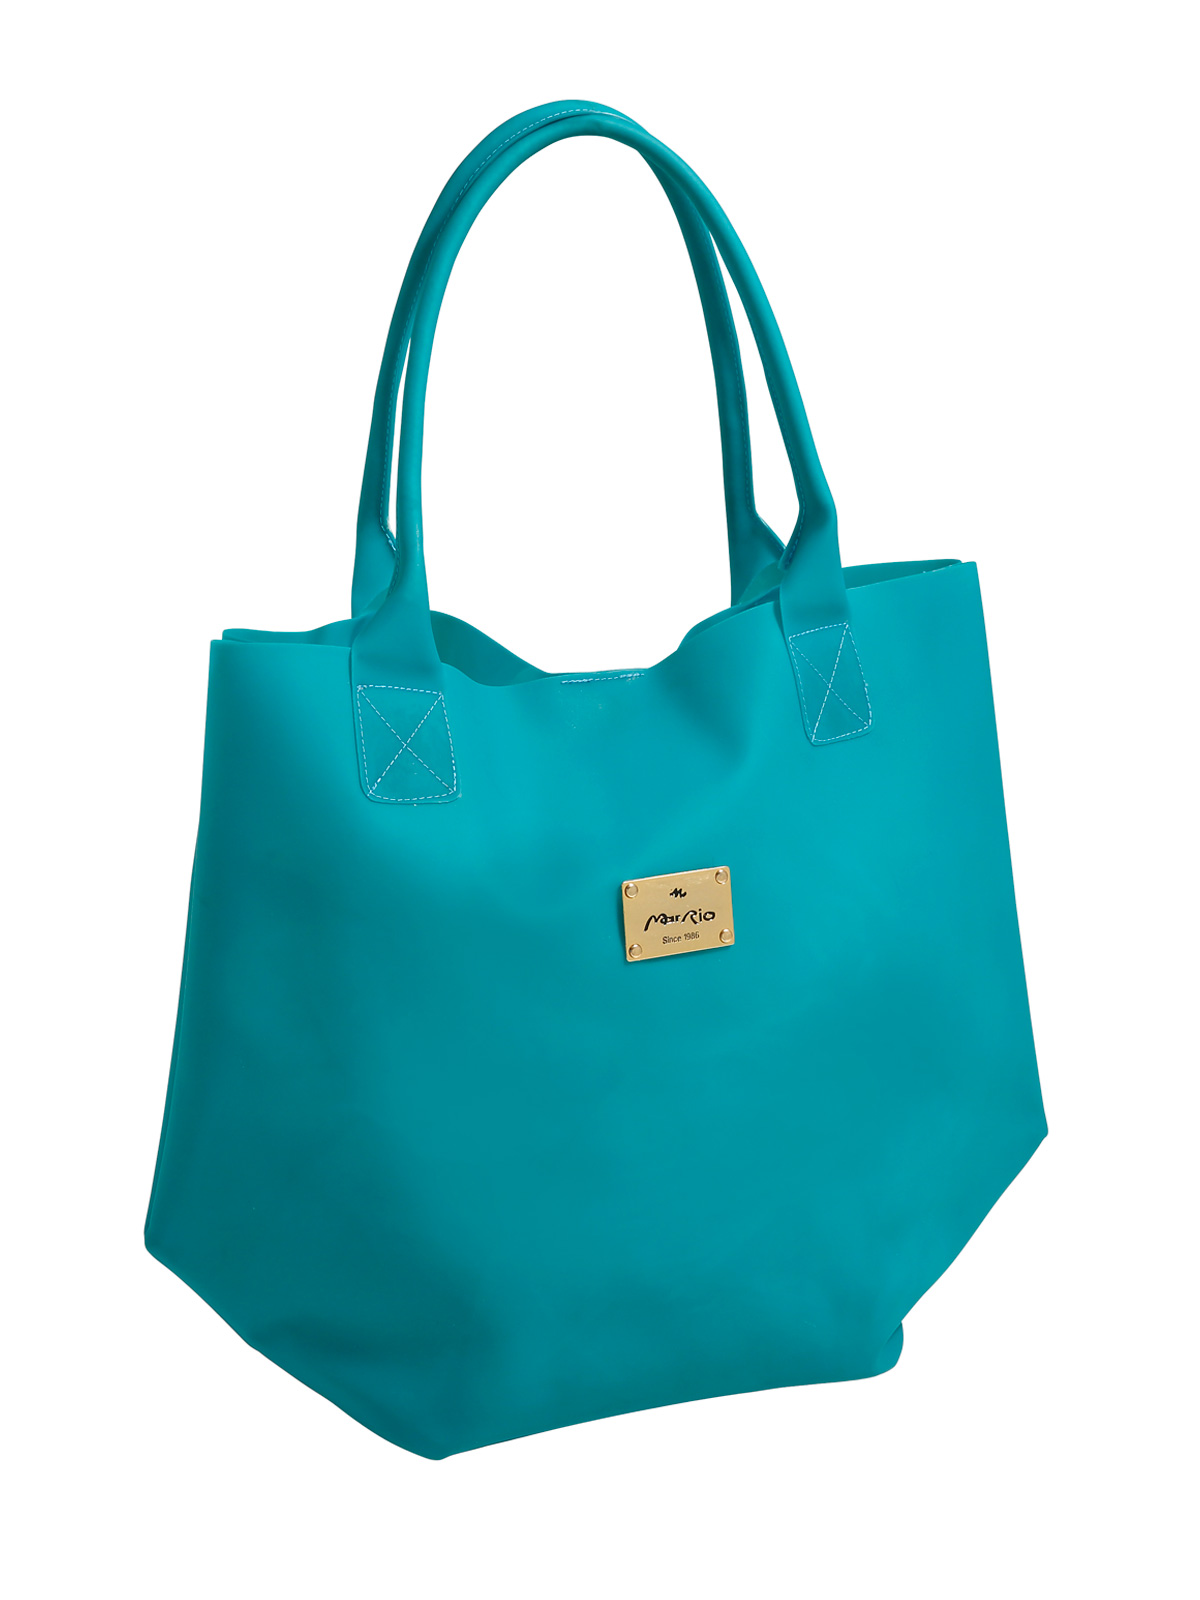 Mar Rio Blue Beach Tote Bag, Silicon Texture - Easy Teal